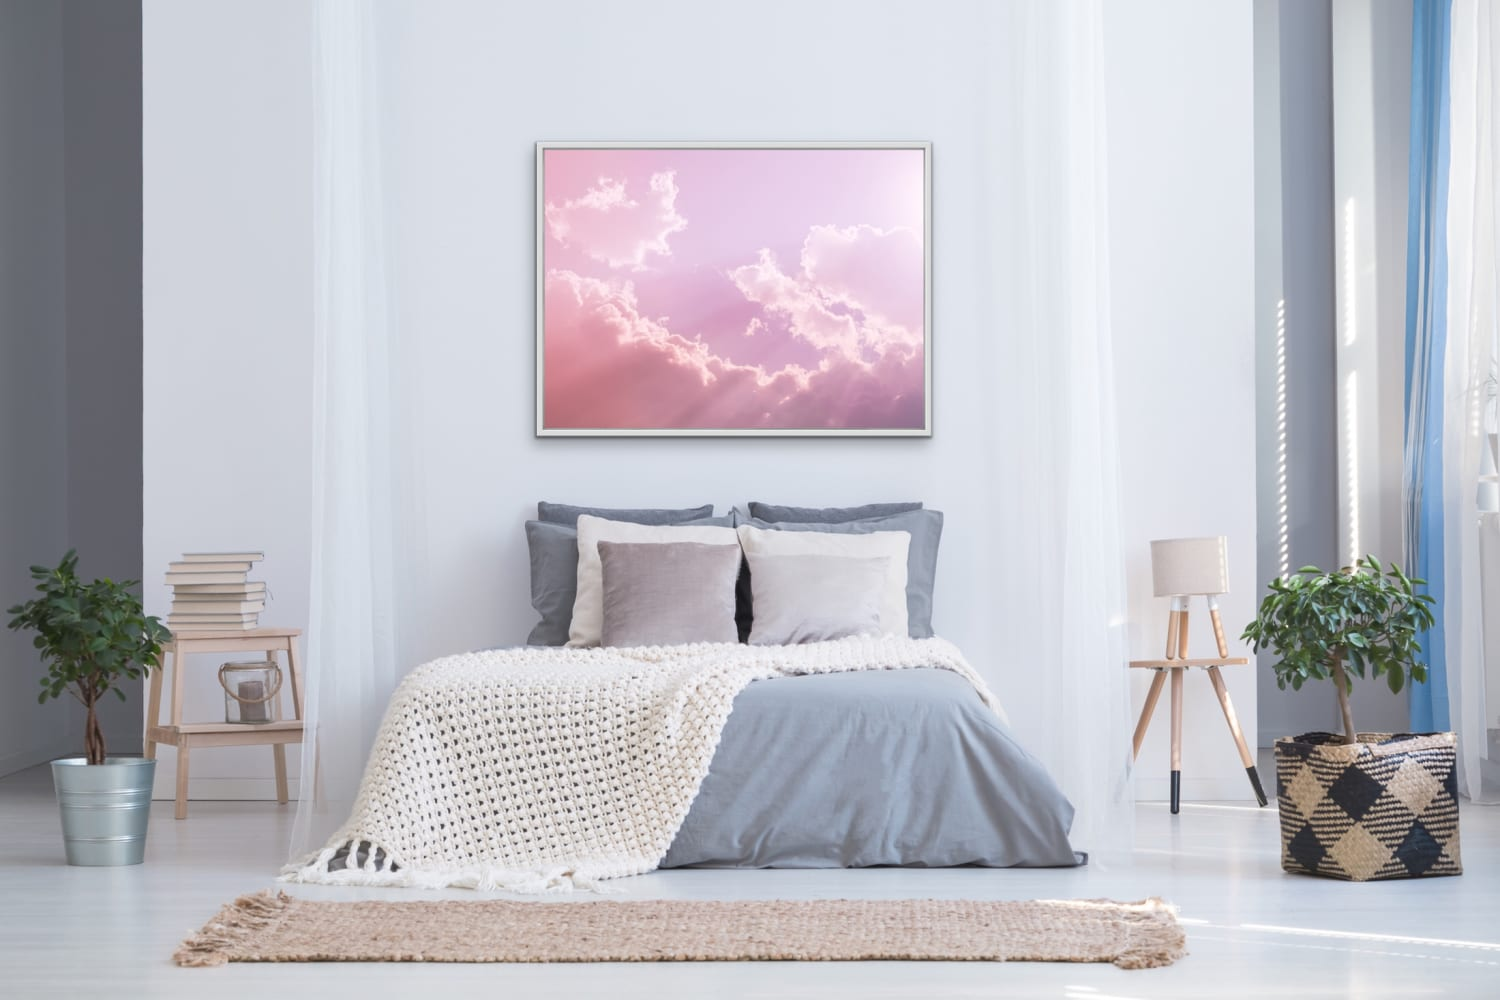 Pastel Pink Sky Photograph with Fluffy Clouds and God Rays